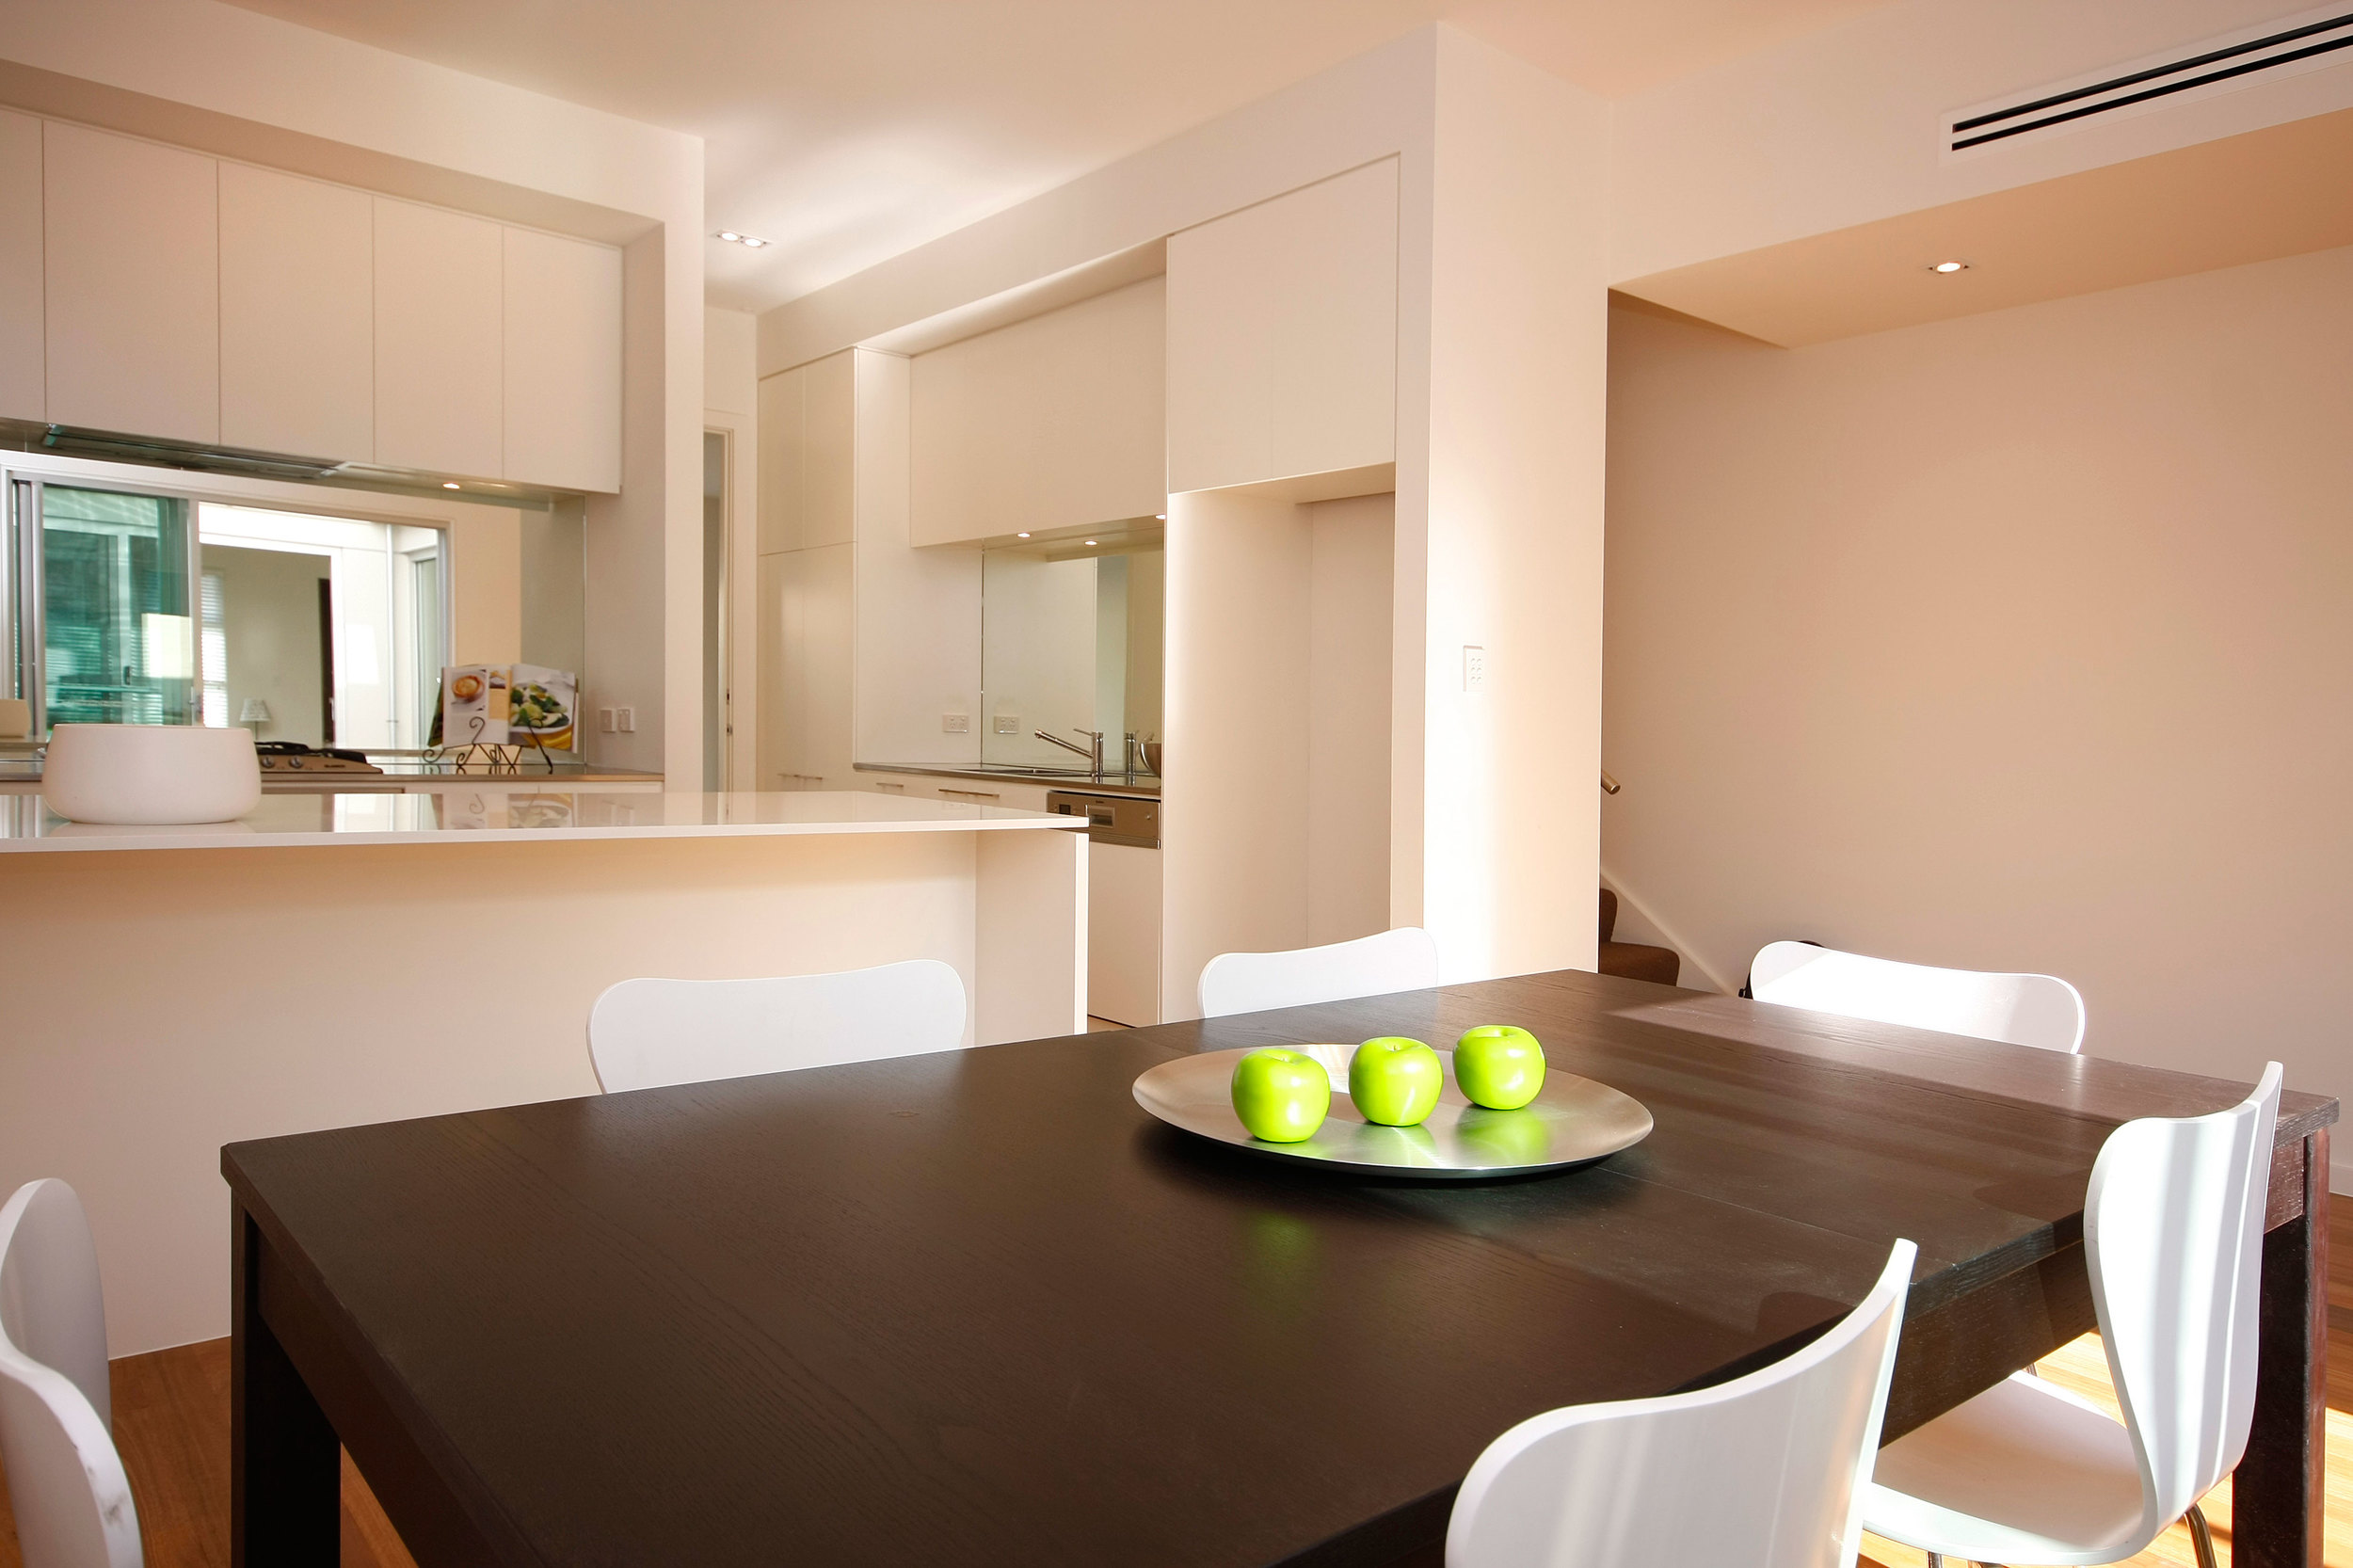 Open plan kitchen and living areas create flexible social spaces